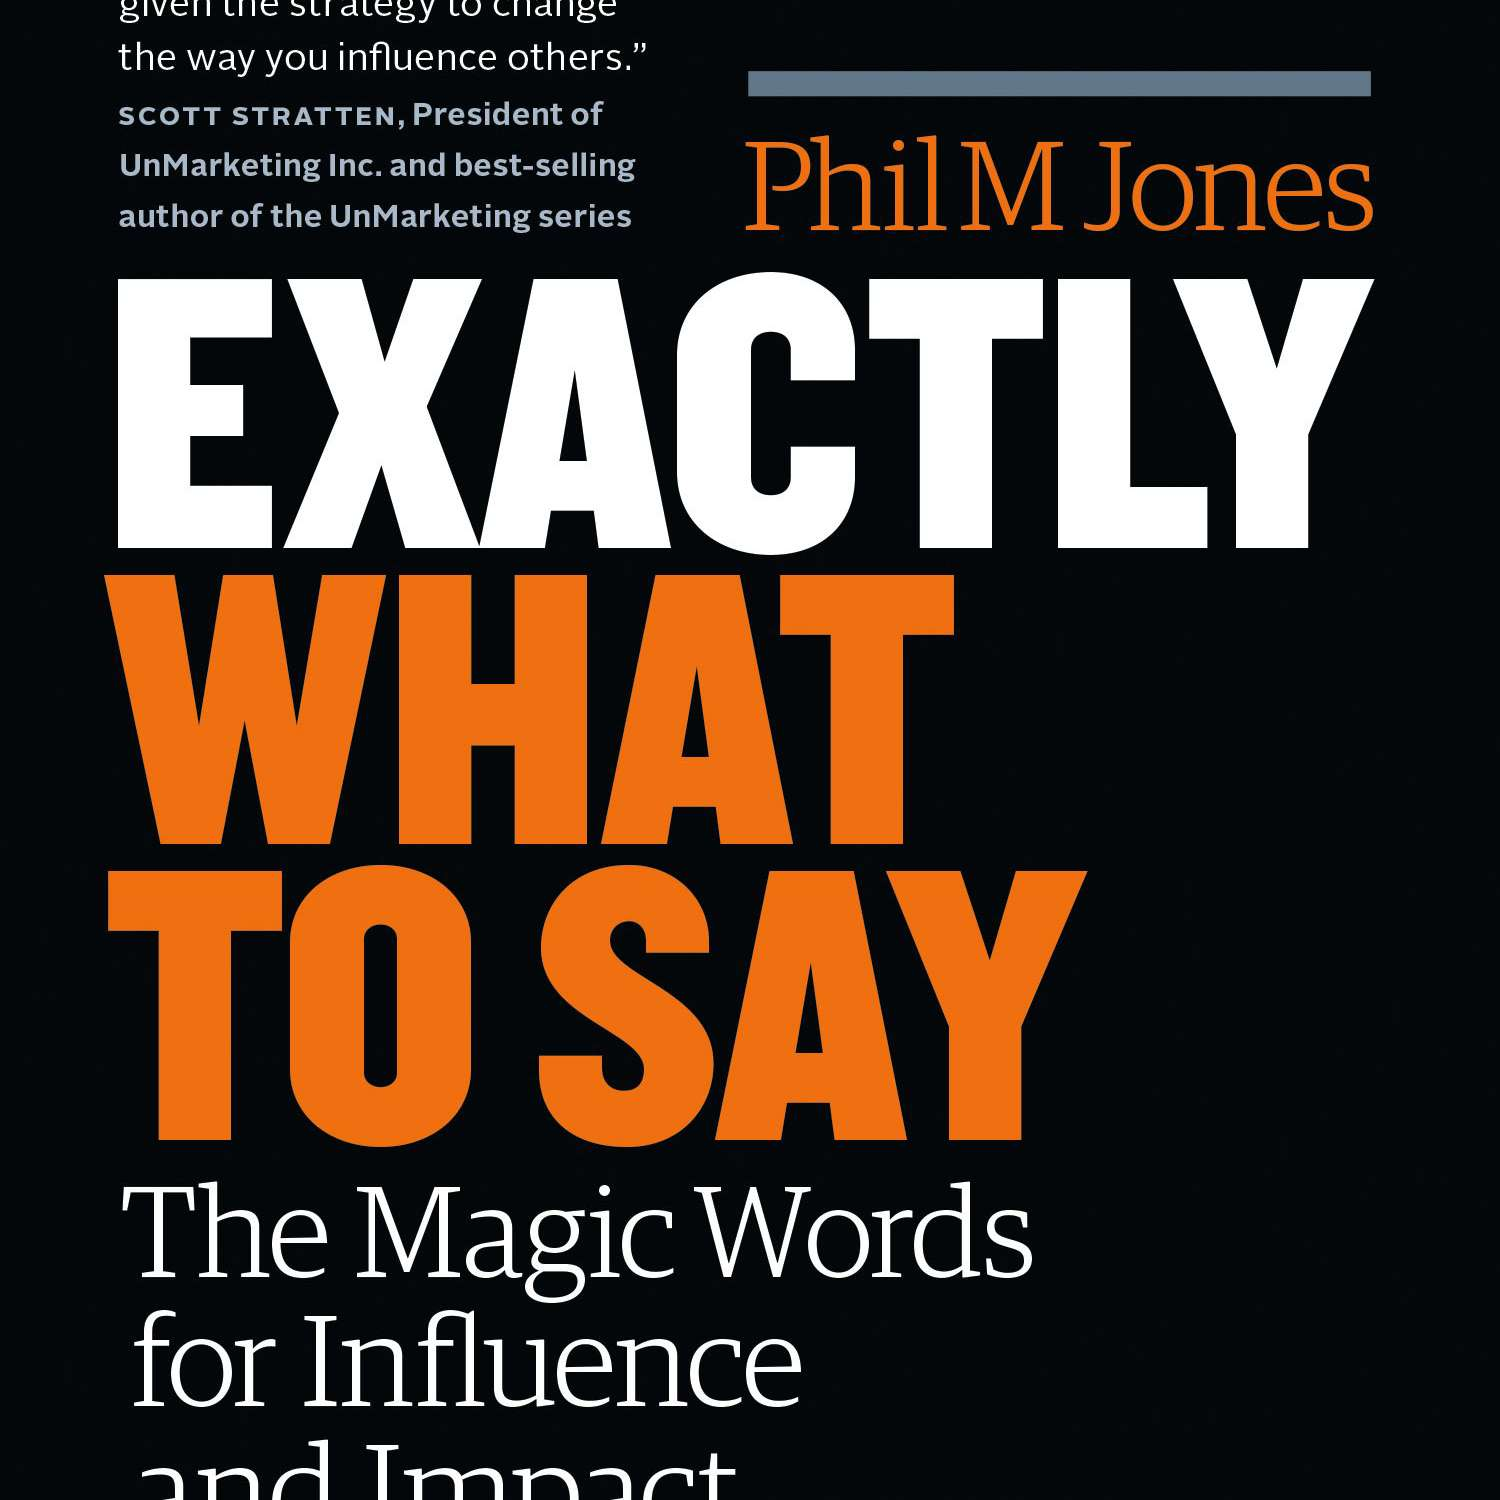 Exactly What to Say: The Magic Words for Influence